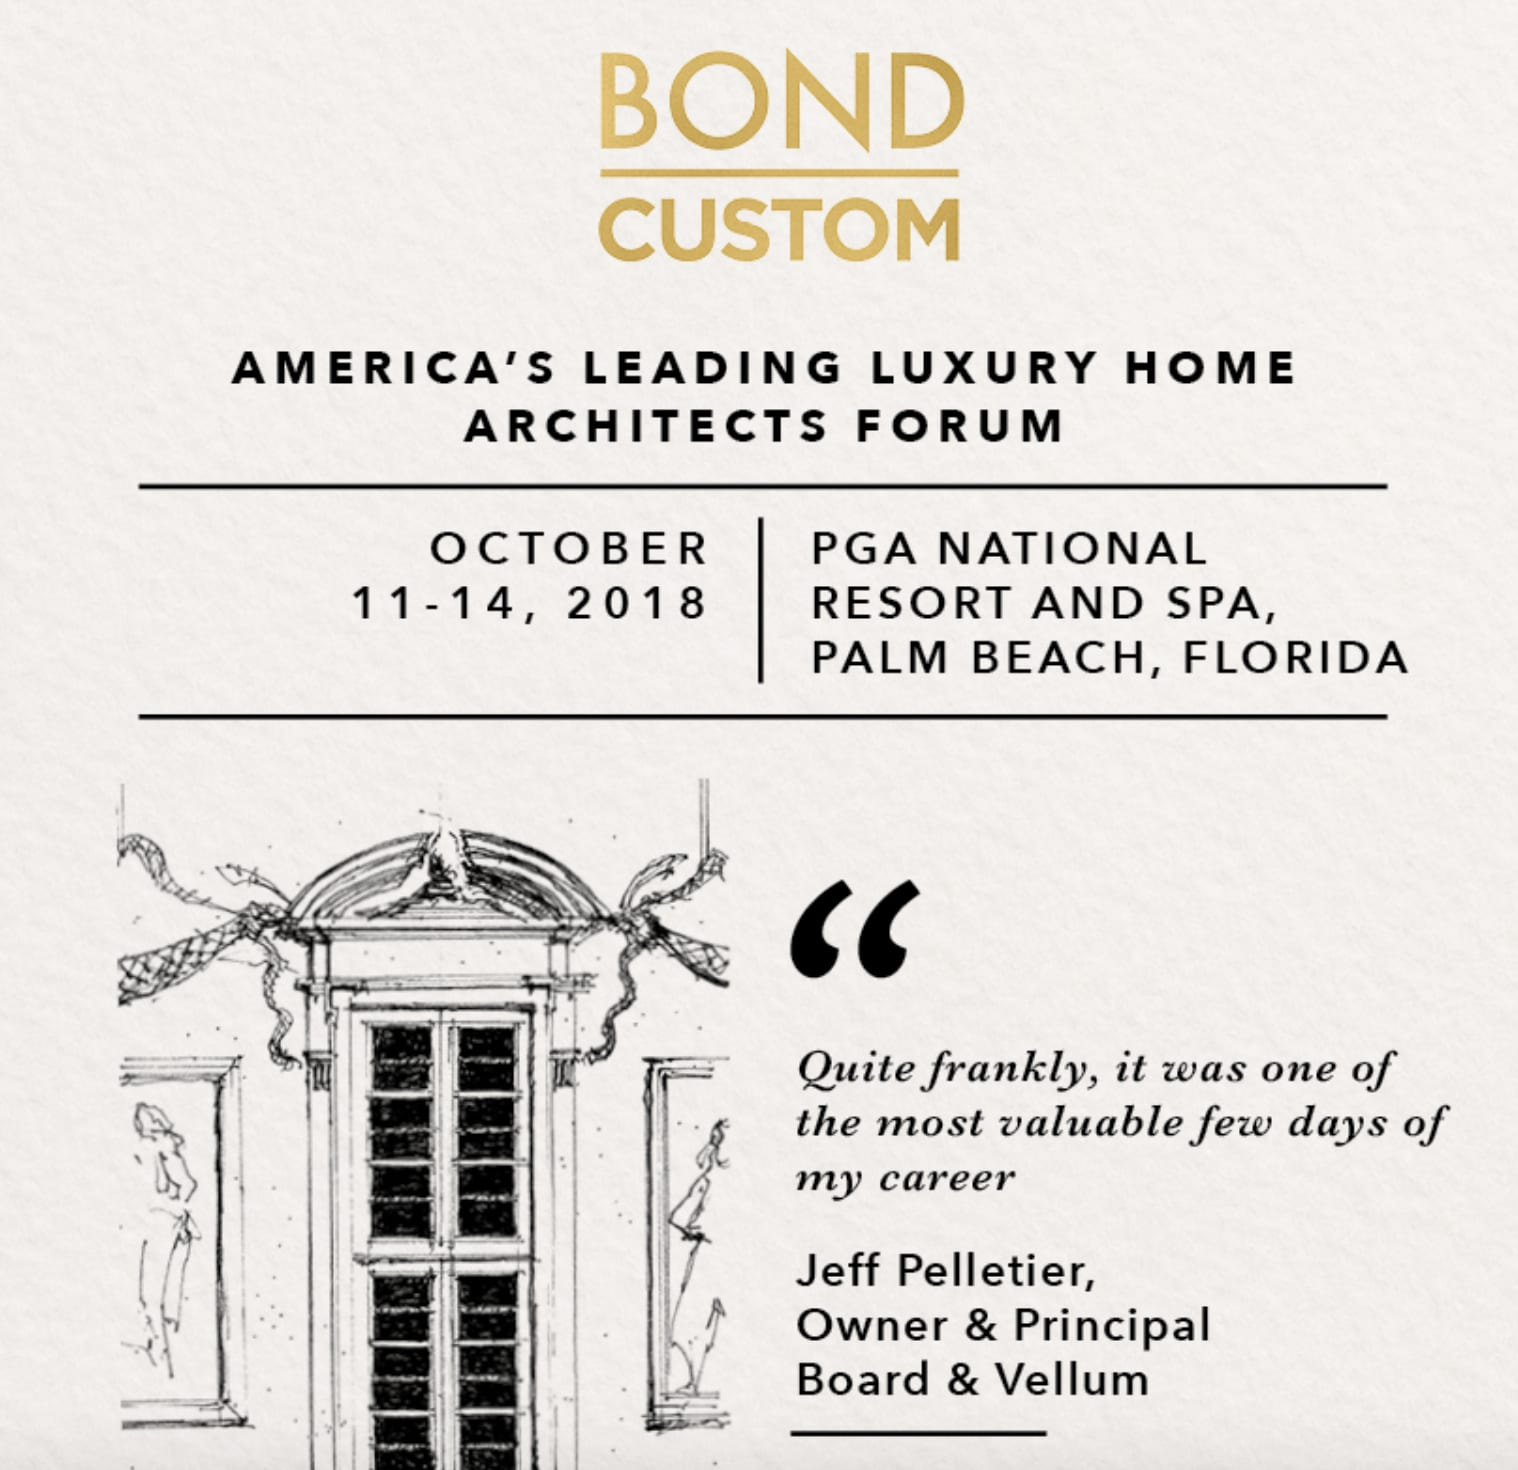 BOND CUSTOM BRINGS LUXURY DESIGN FORUM TO PALM BEACH